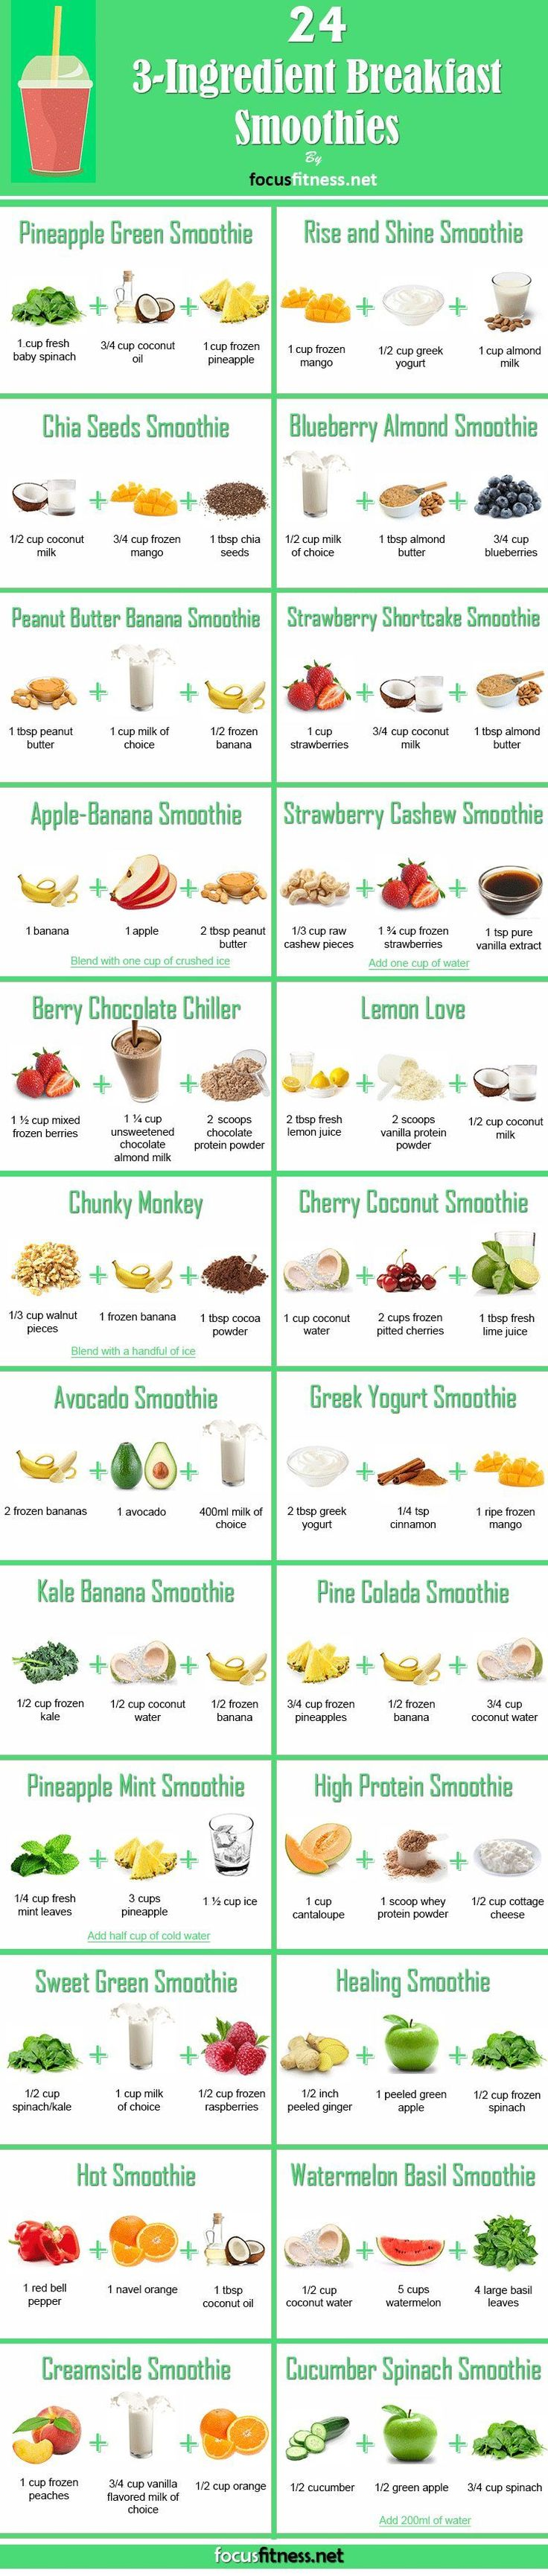 24 3-Ingredient Breakfast Smoothies for Weight Loss